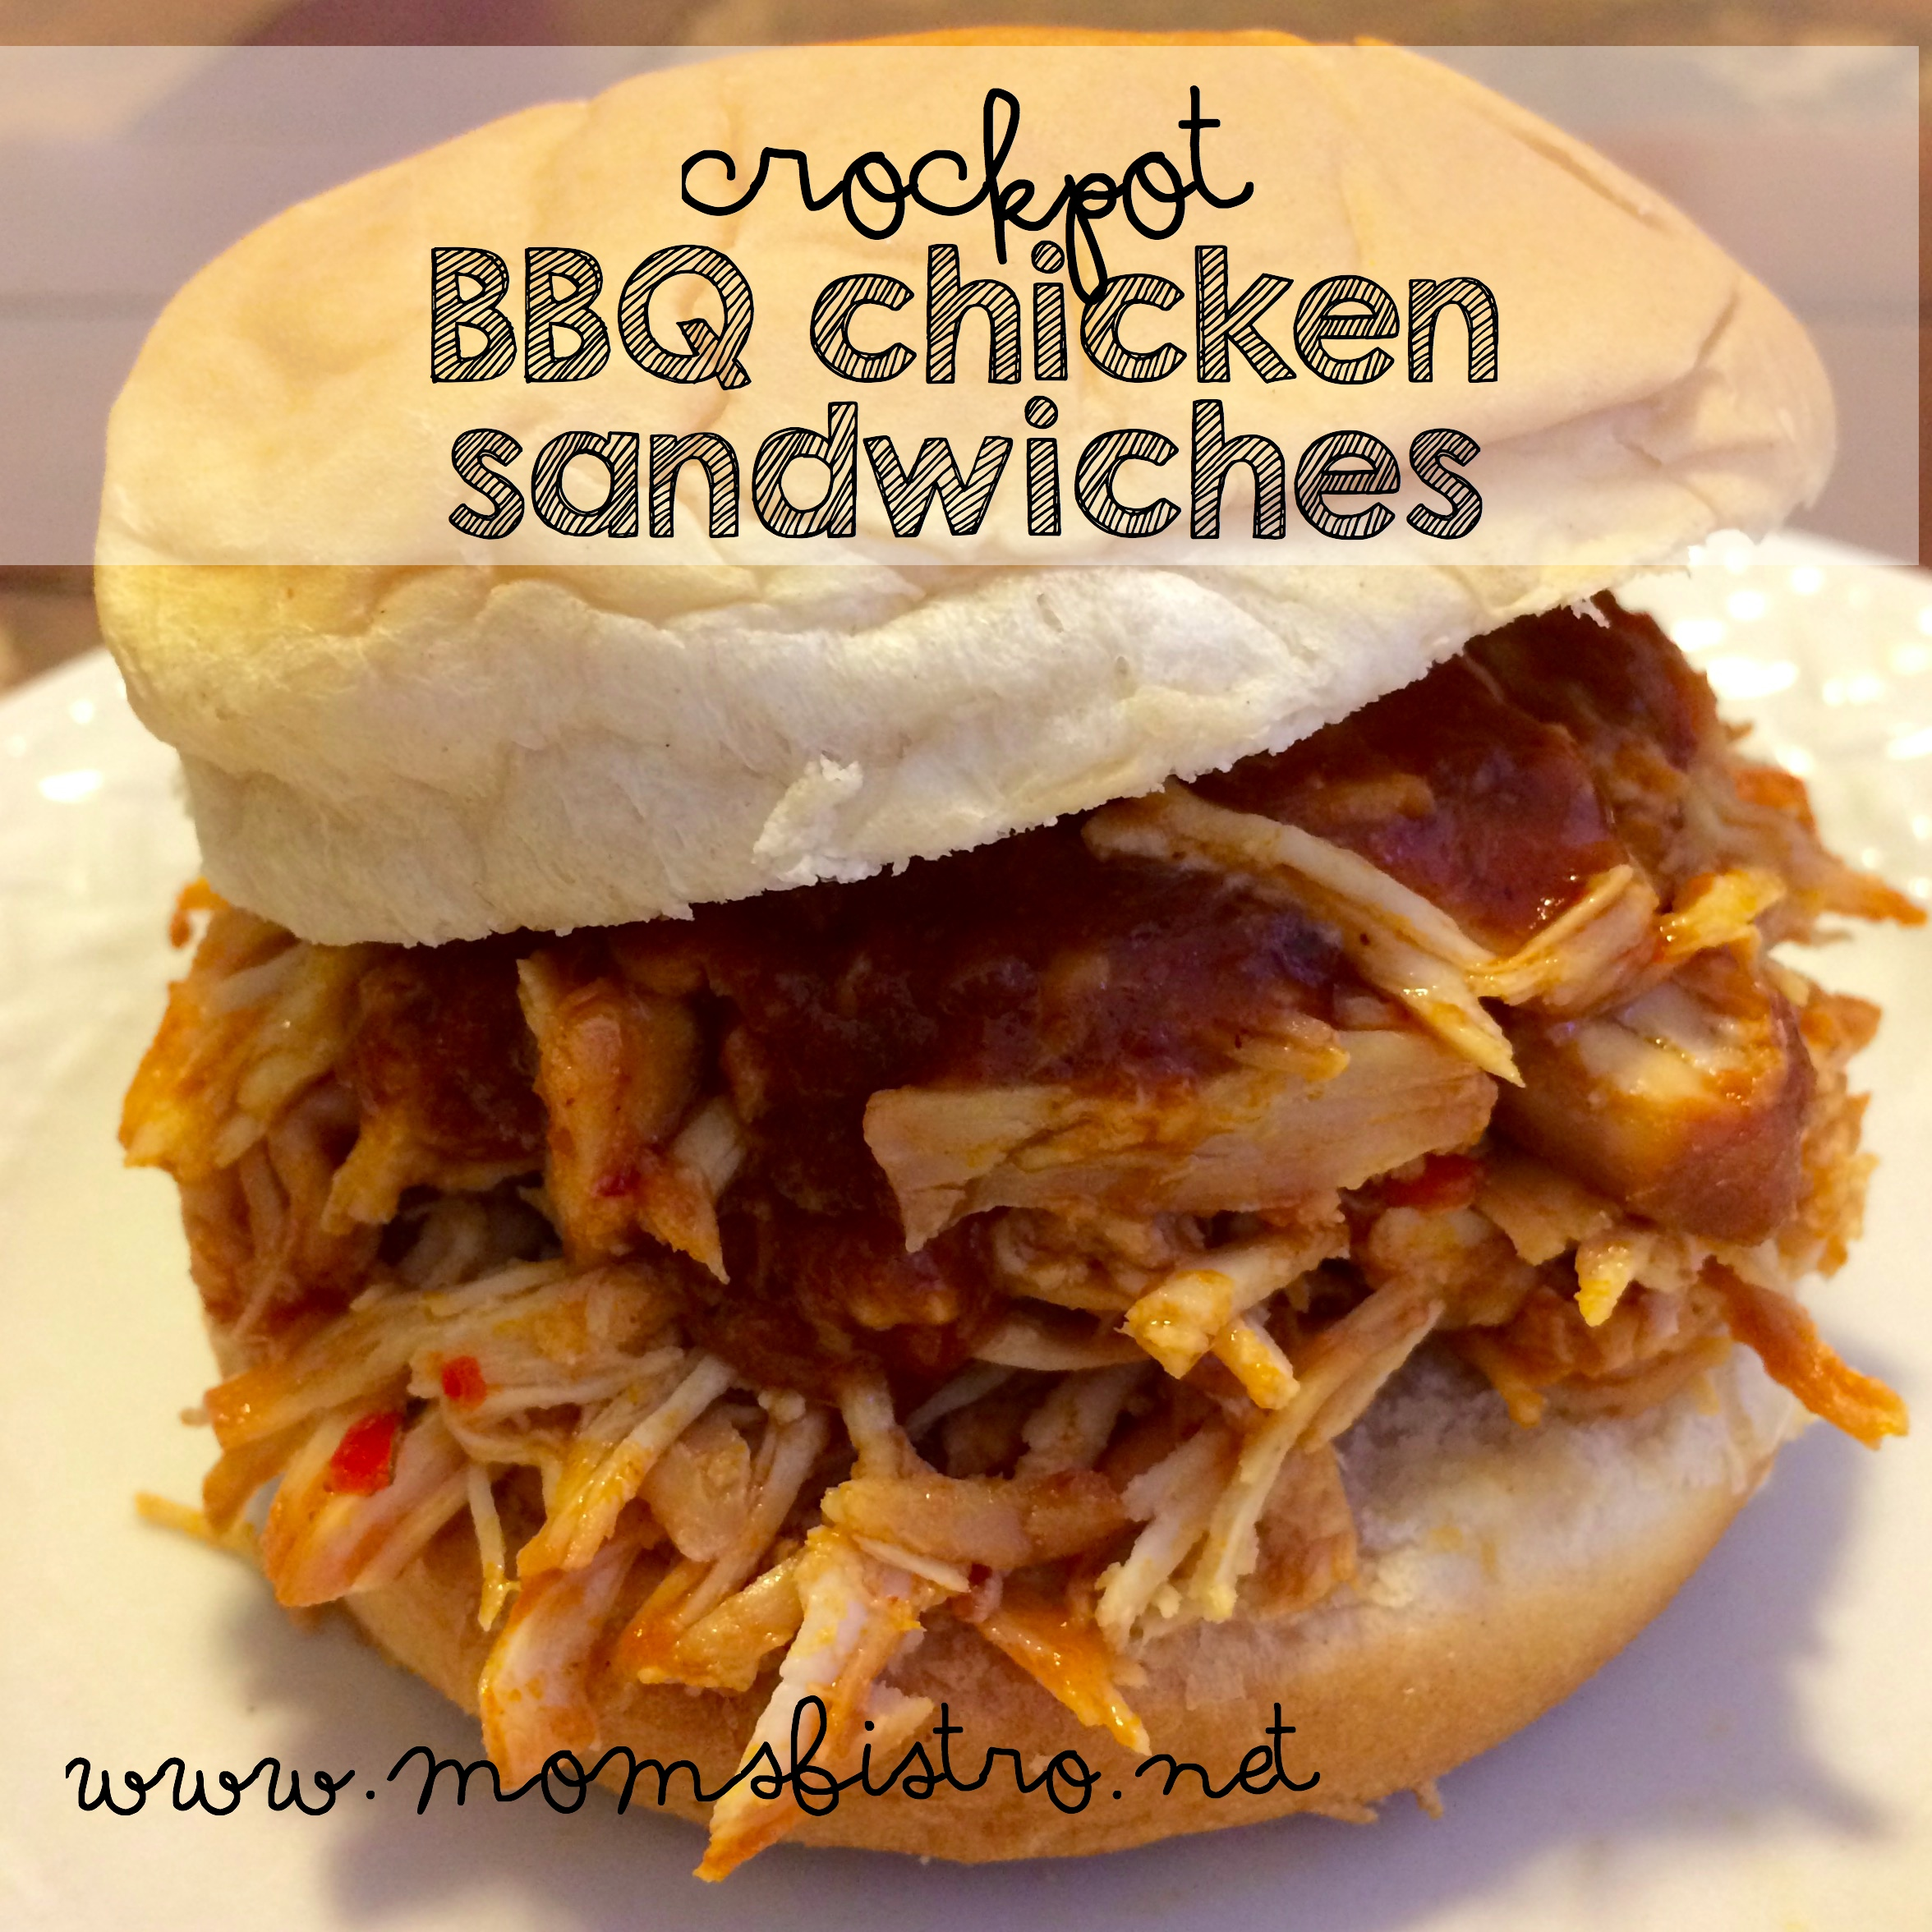 Super Easy Kid-Friendly Crockpot BBQ Chicken Sandwiches Recipe And An Easy Homemade Brown Sugar BBQ Sauce